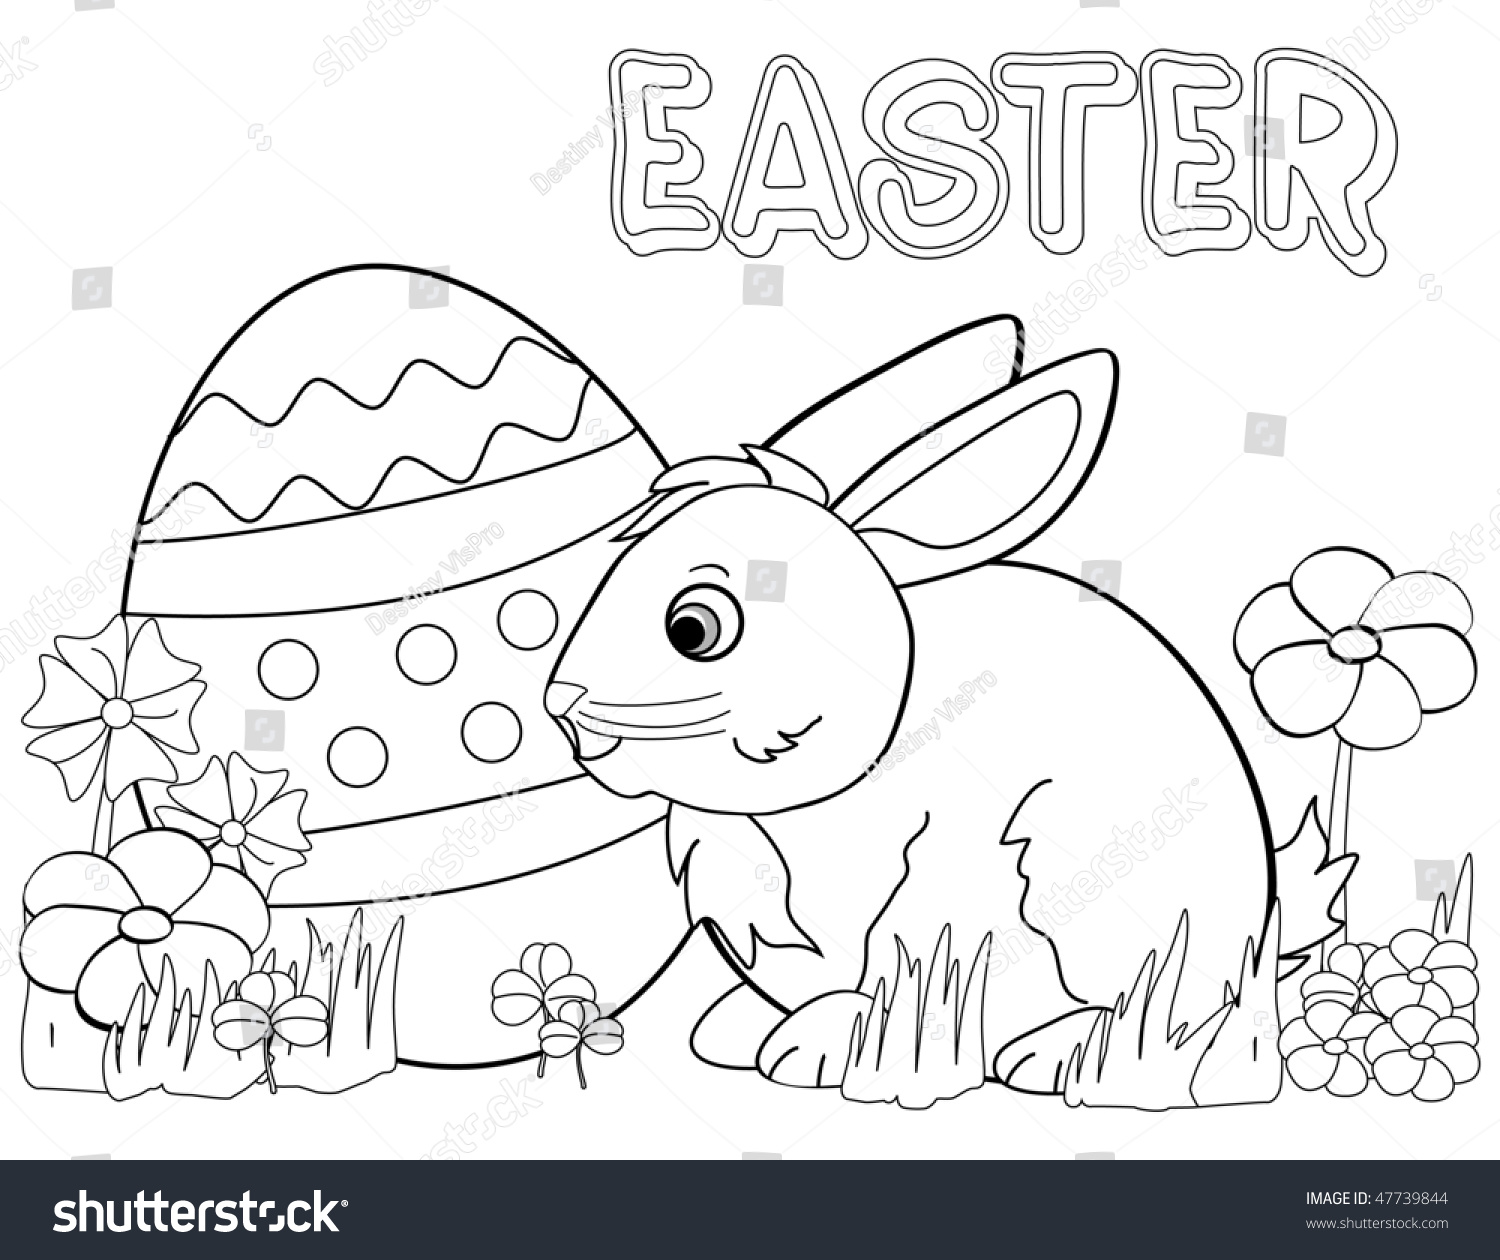 Black And White Coloring Template For Easter Bunny Amp Egg